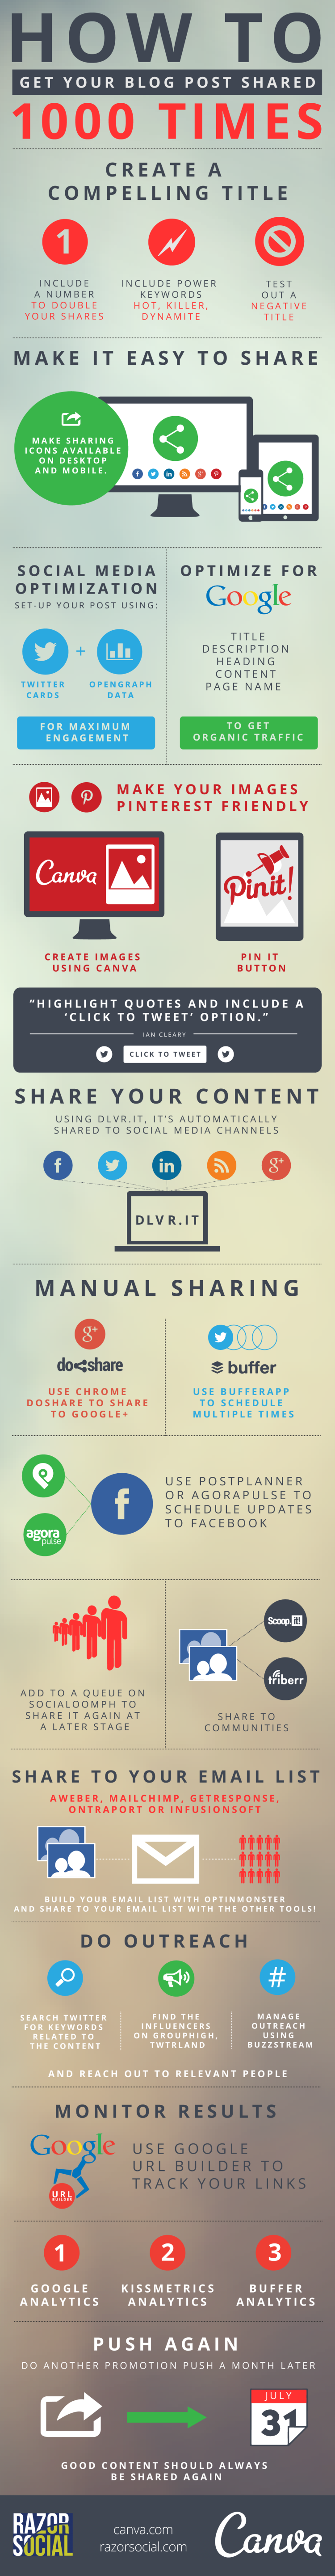 How To Get Your Blog Post Shared 1000 Times Infographic